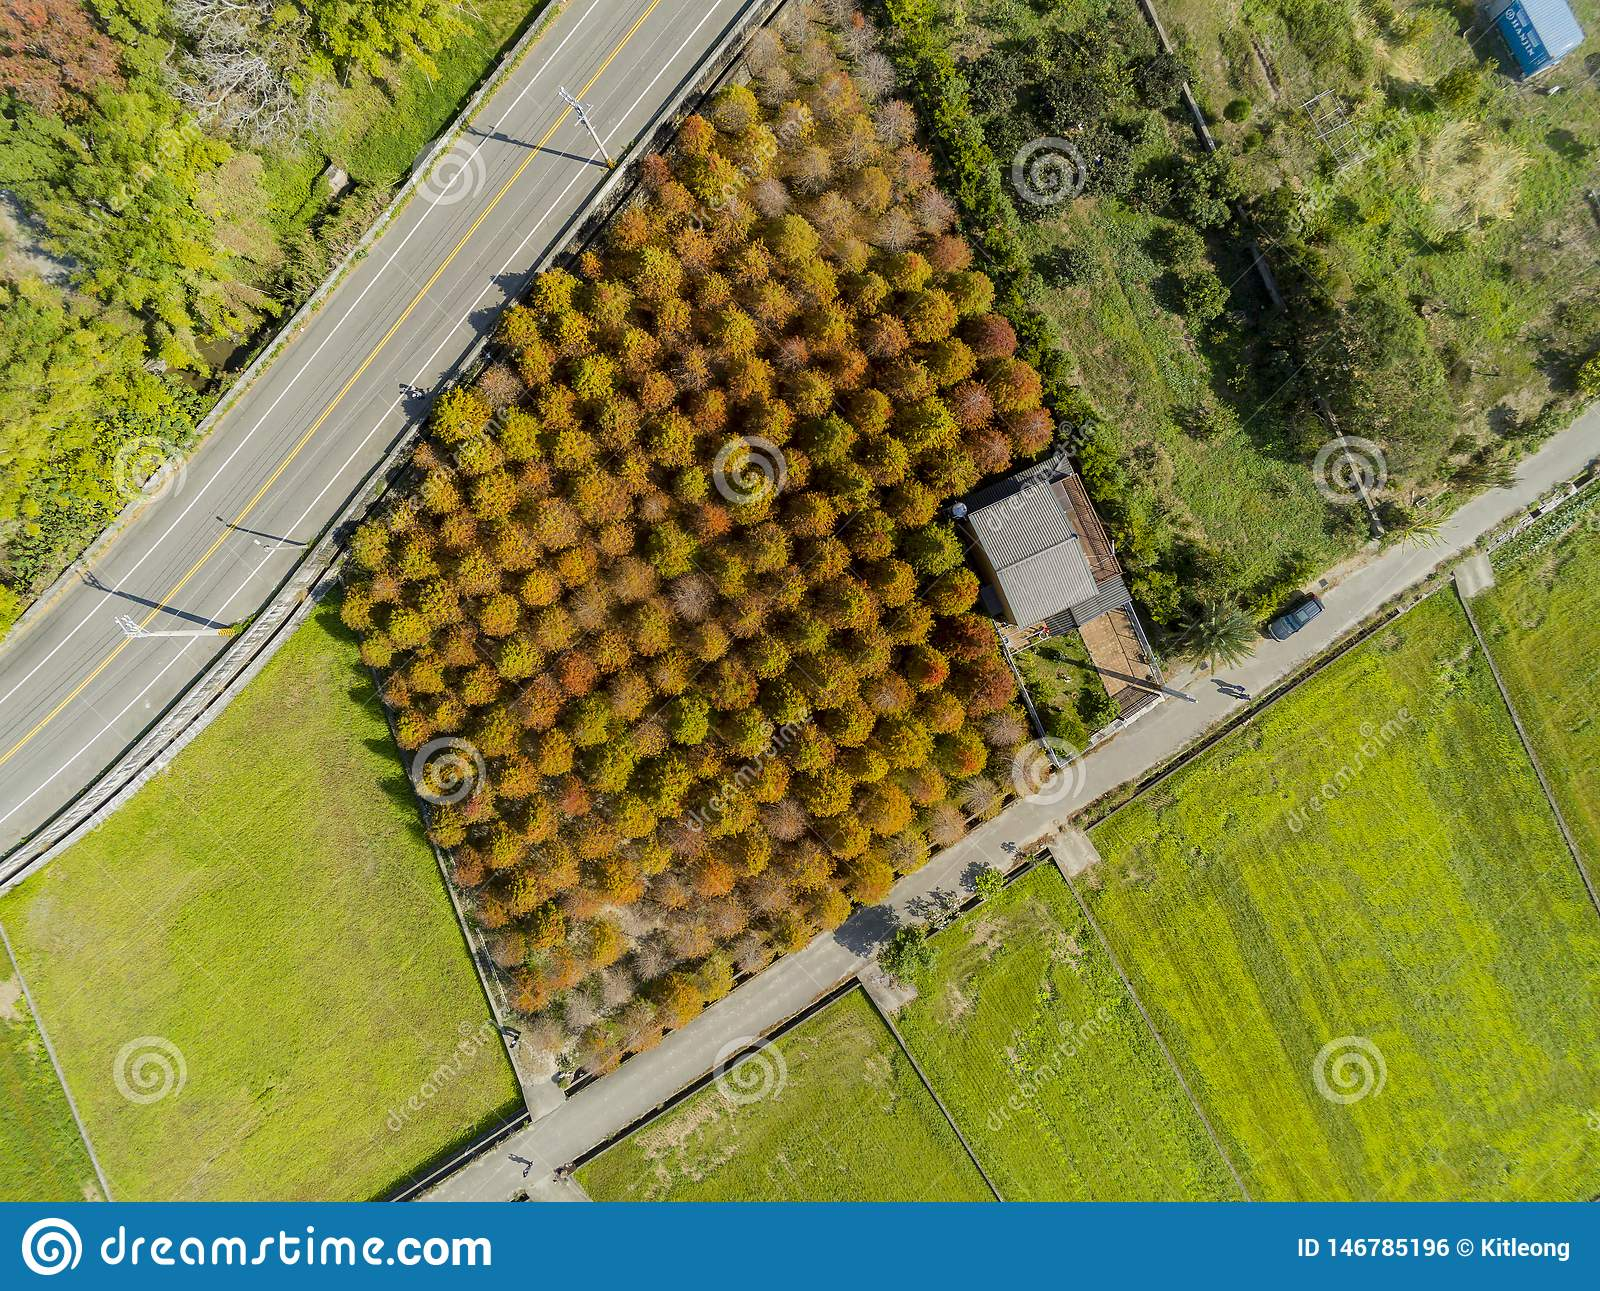 Aerial view of the Taxodium distichum in fall color with red with orange leaves